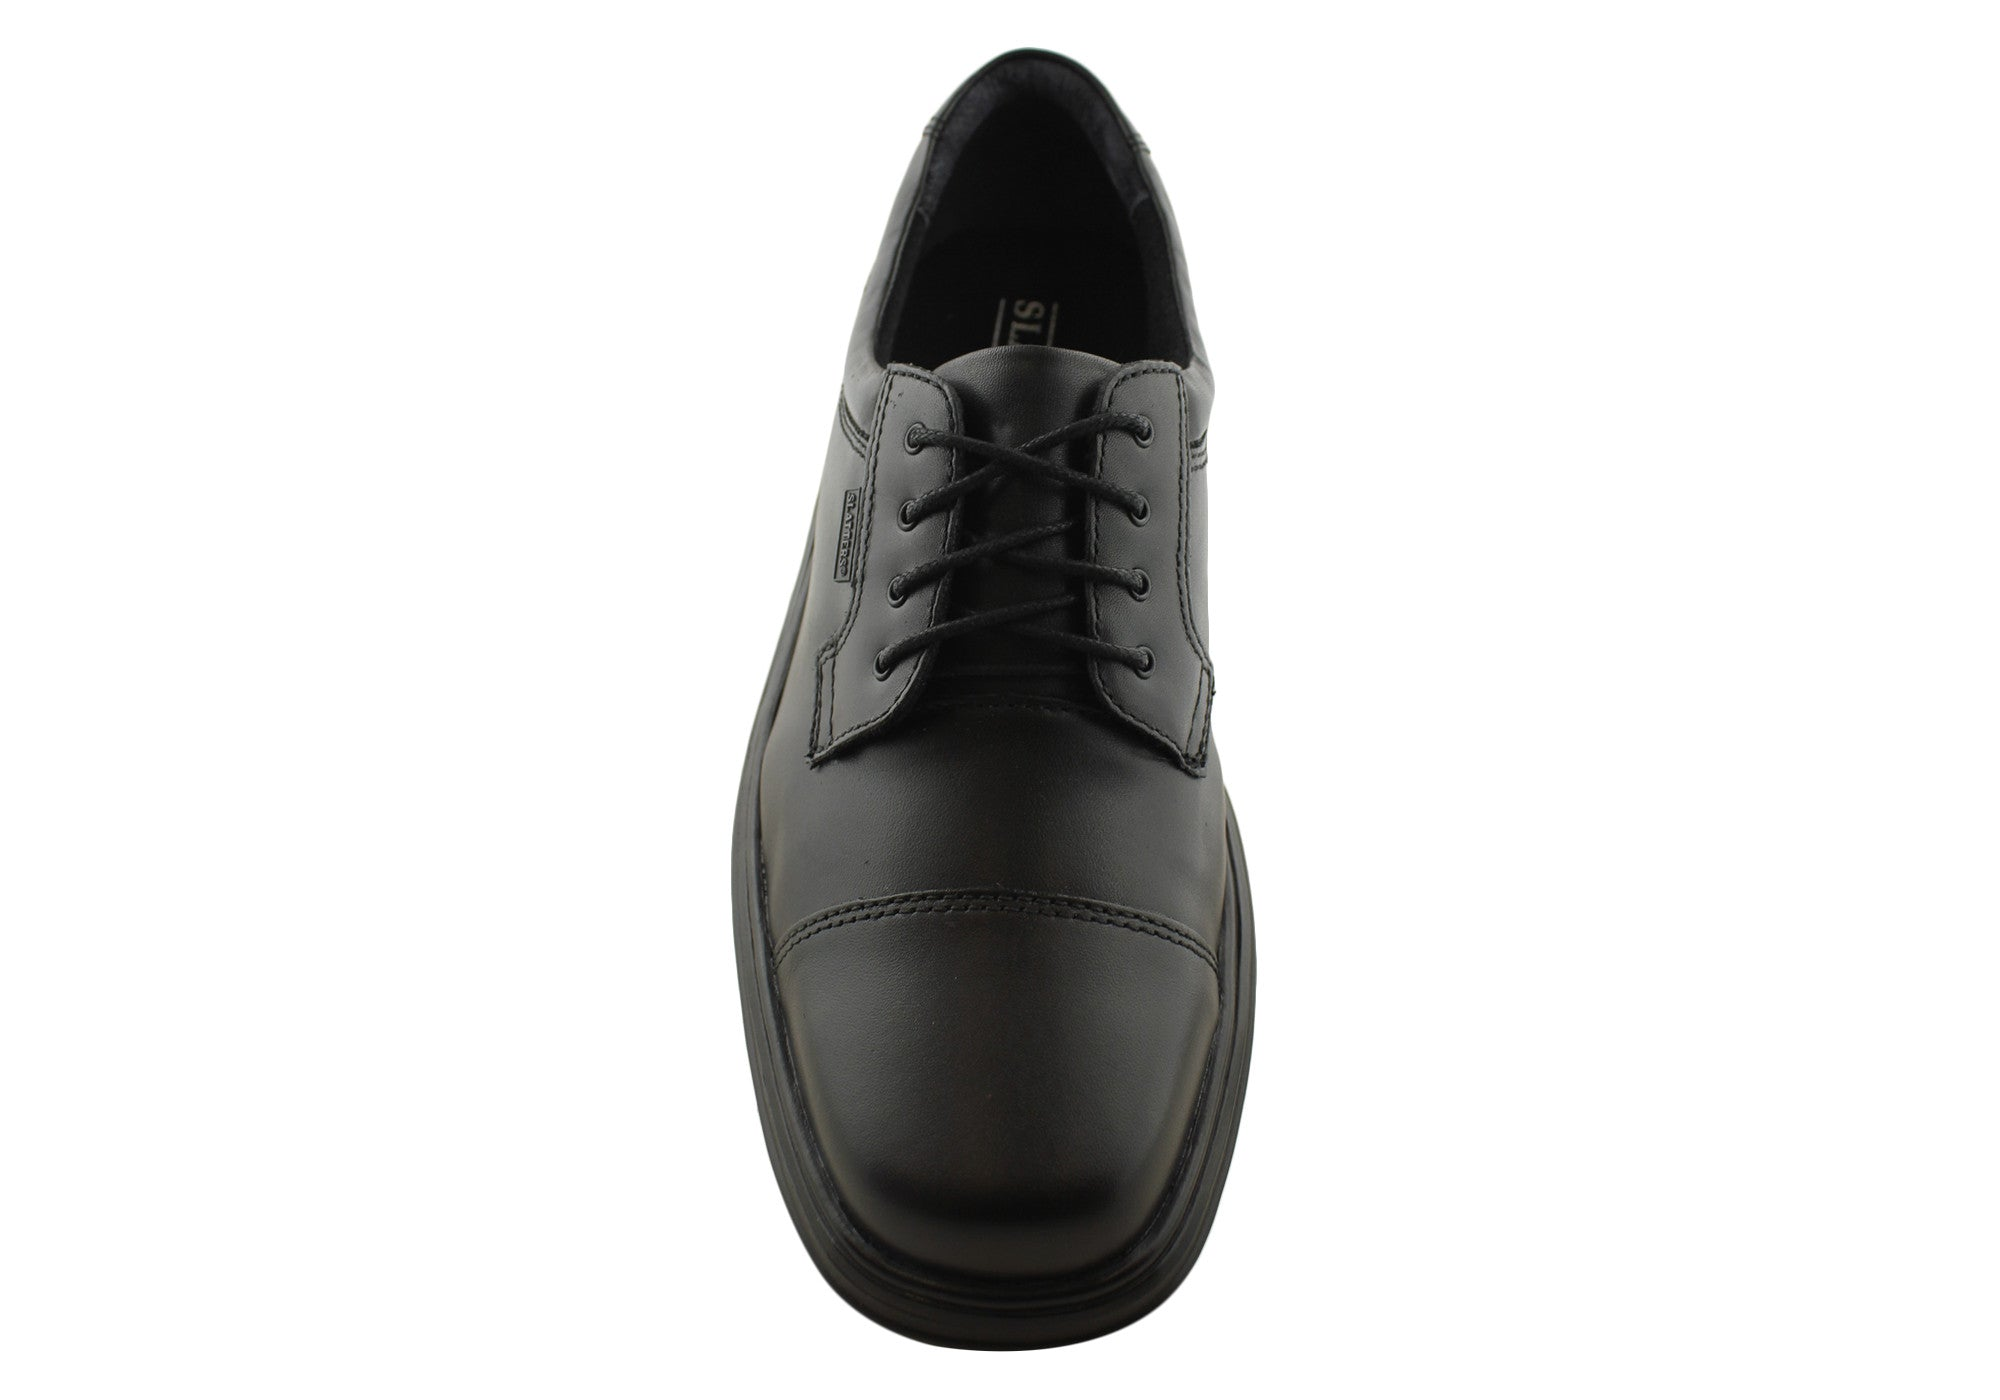 Slatters Denmark Mens Leather Lace Up Dress Shoes